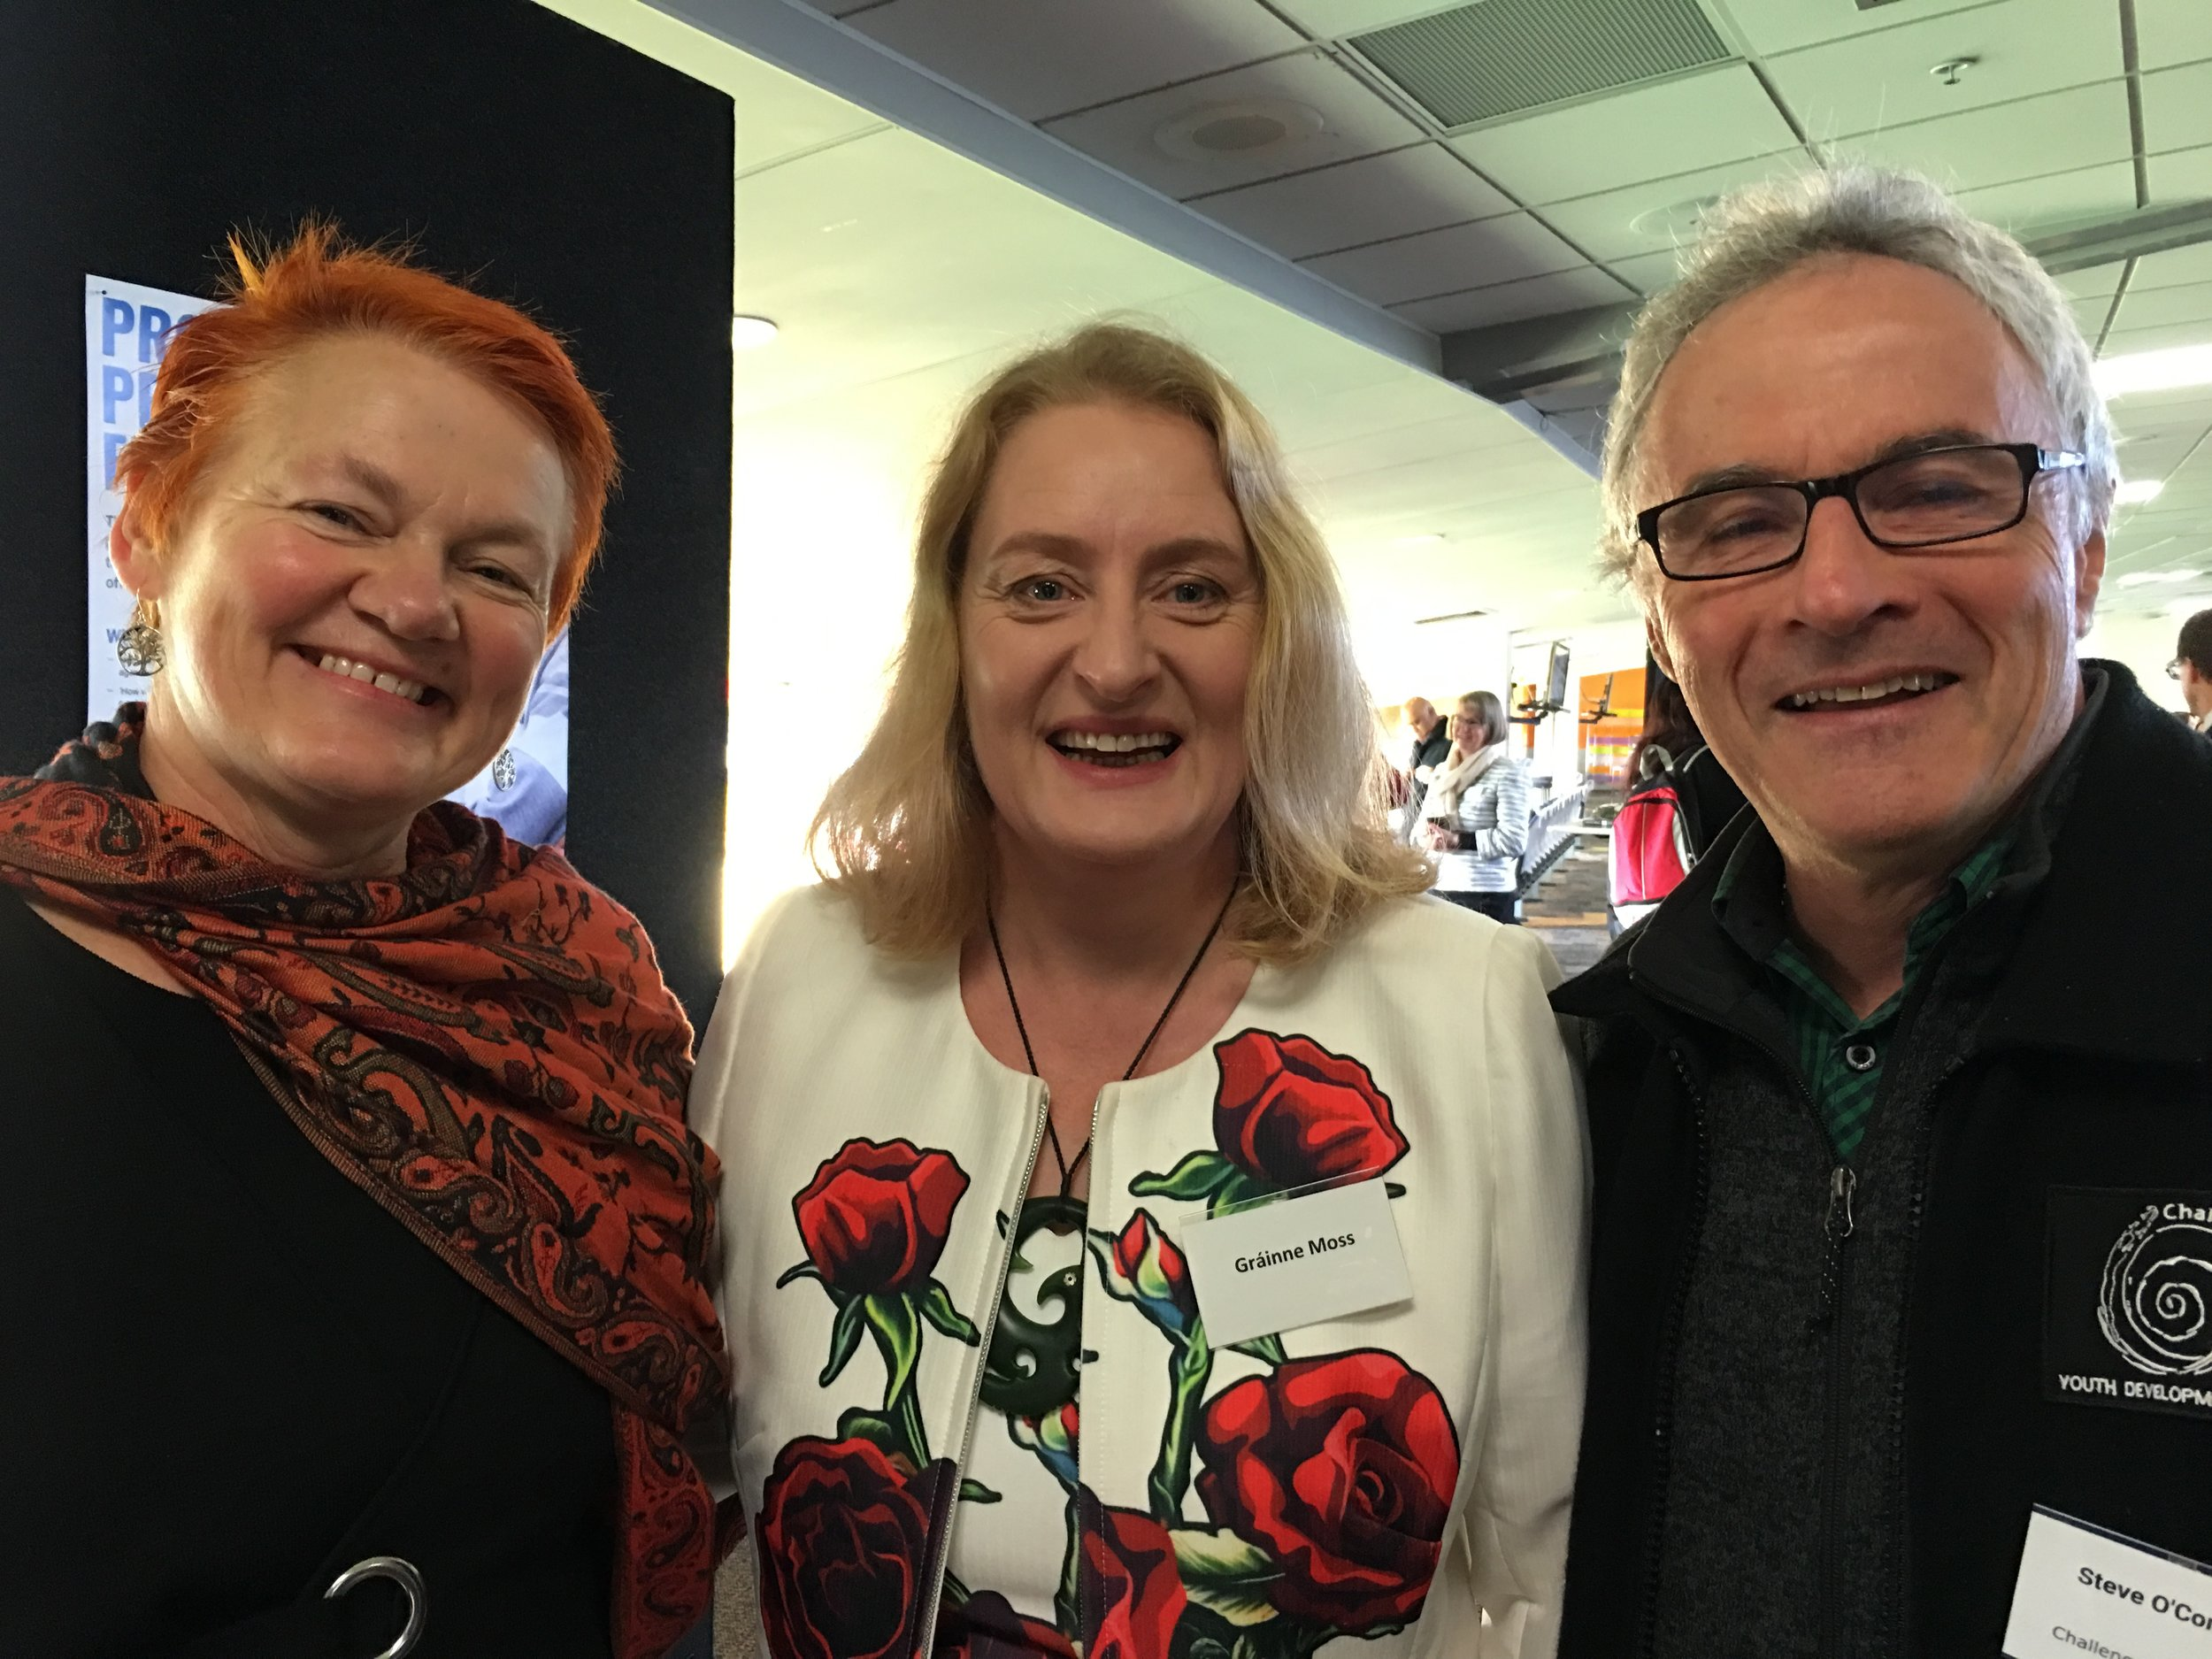 The Irish connection: Grainne Moss (Chief Executive of Oranga Tamariki – and a new cousin I made at the forum: Steve O'Connor.